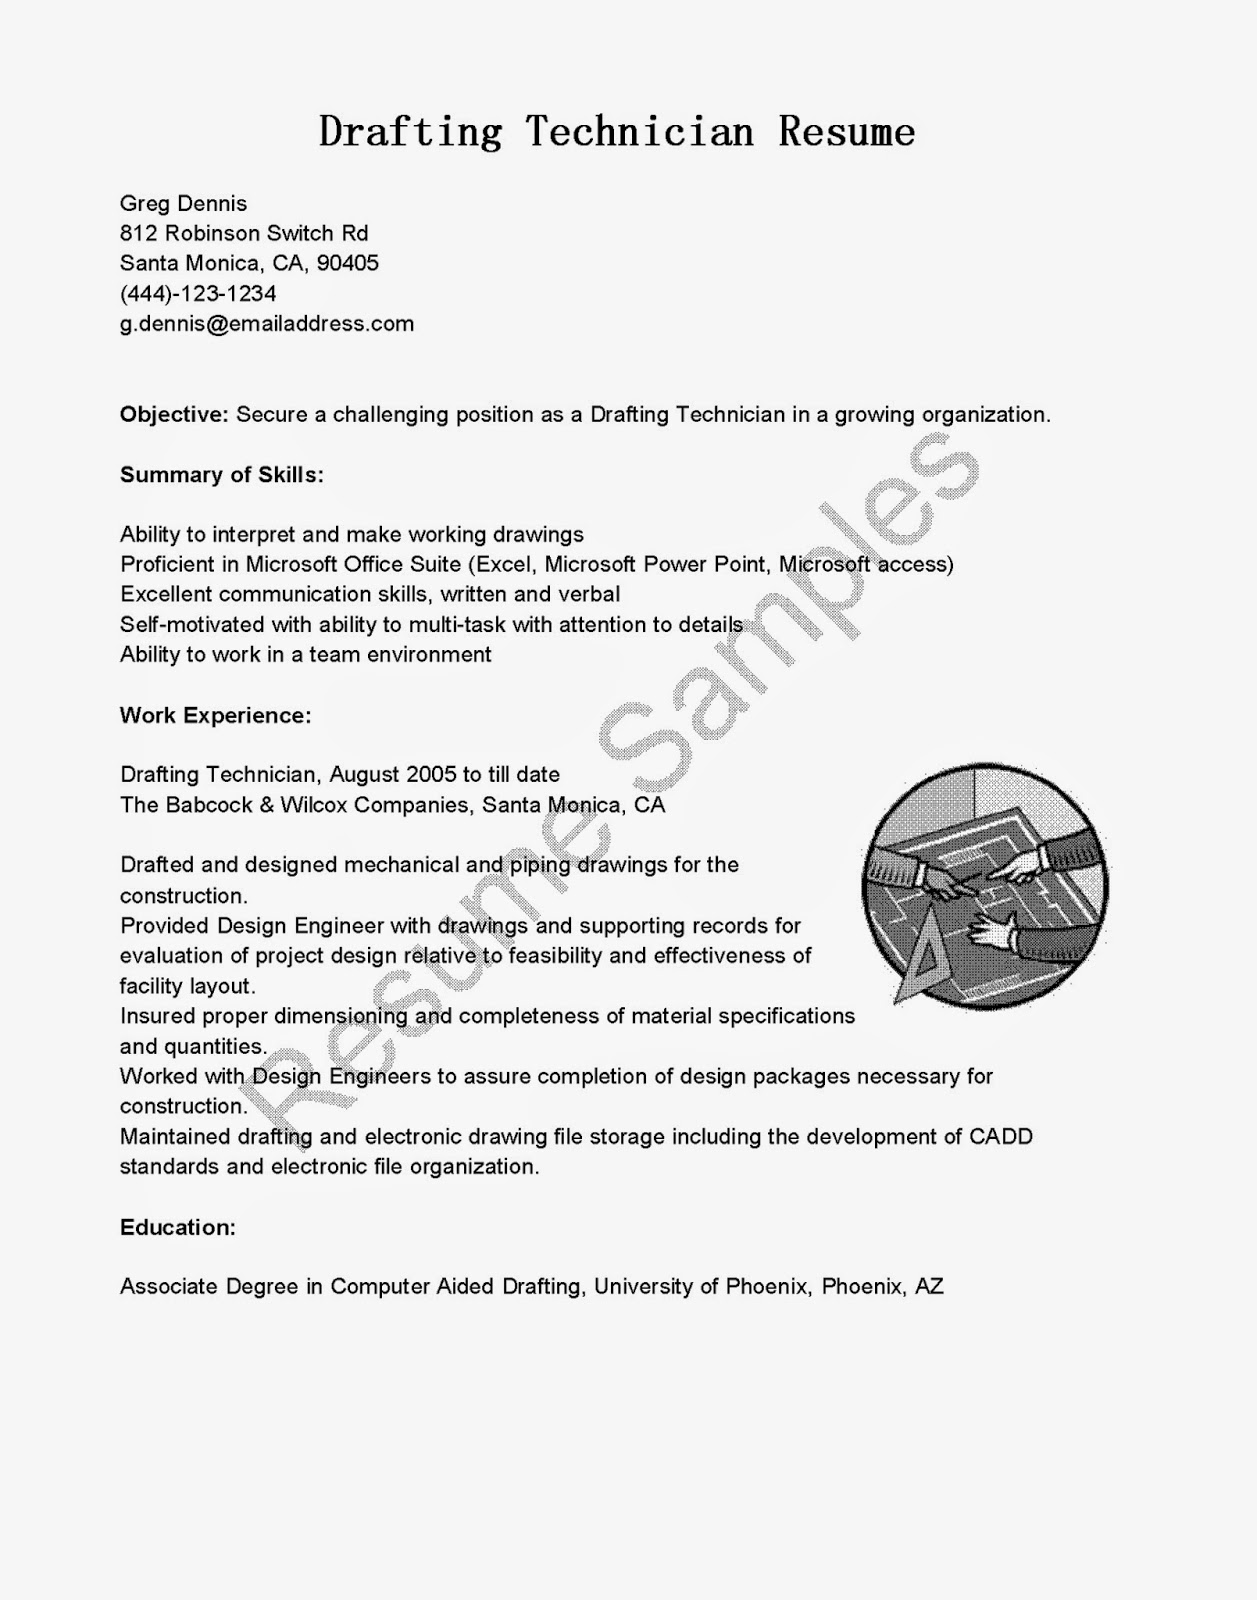 resume sample hvac technician general maintenance technician drafting technician resume support technician resume sample resume sample